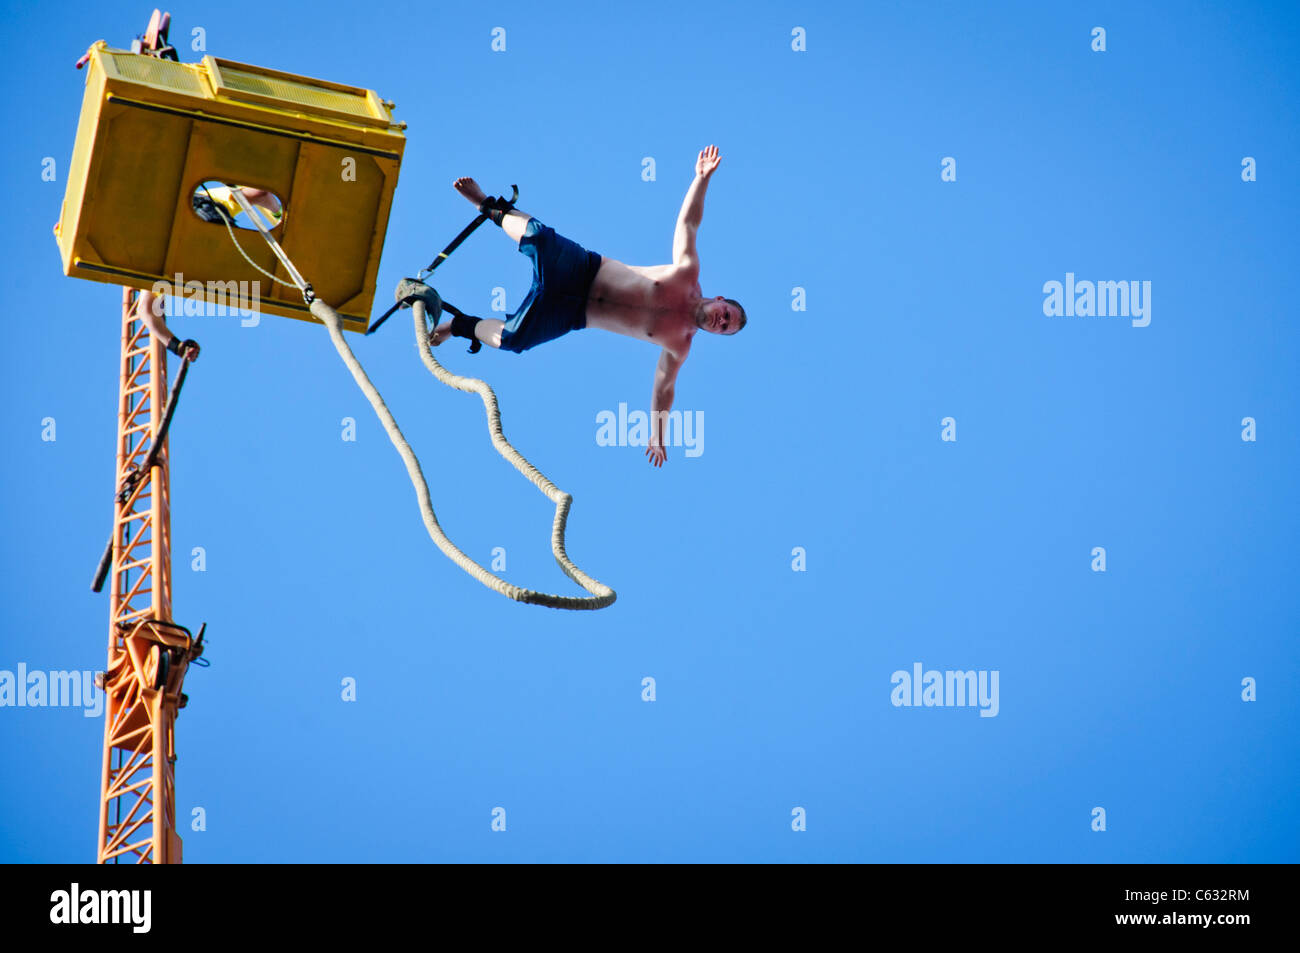 07331a61f326 young man Bungee Jumping at Woodstock festival in Kostrzyn